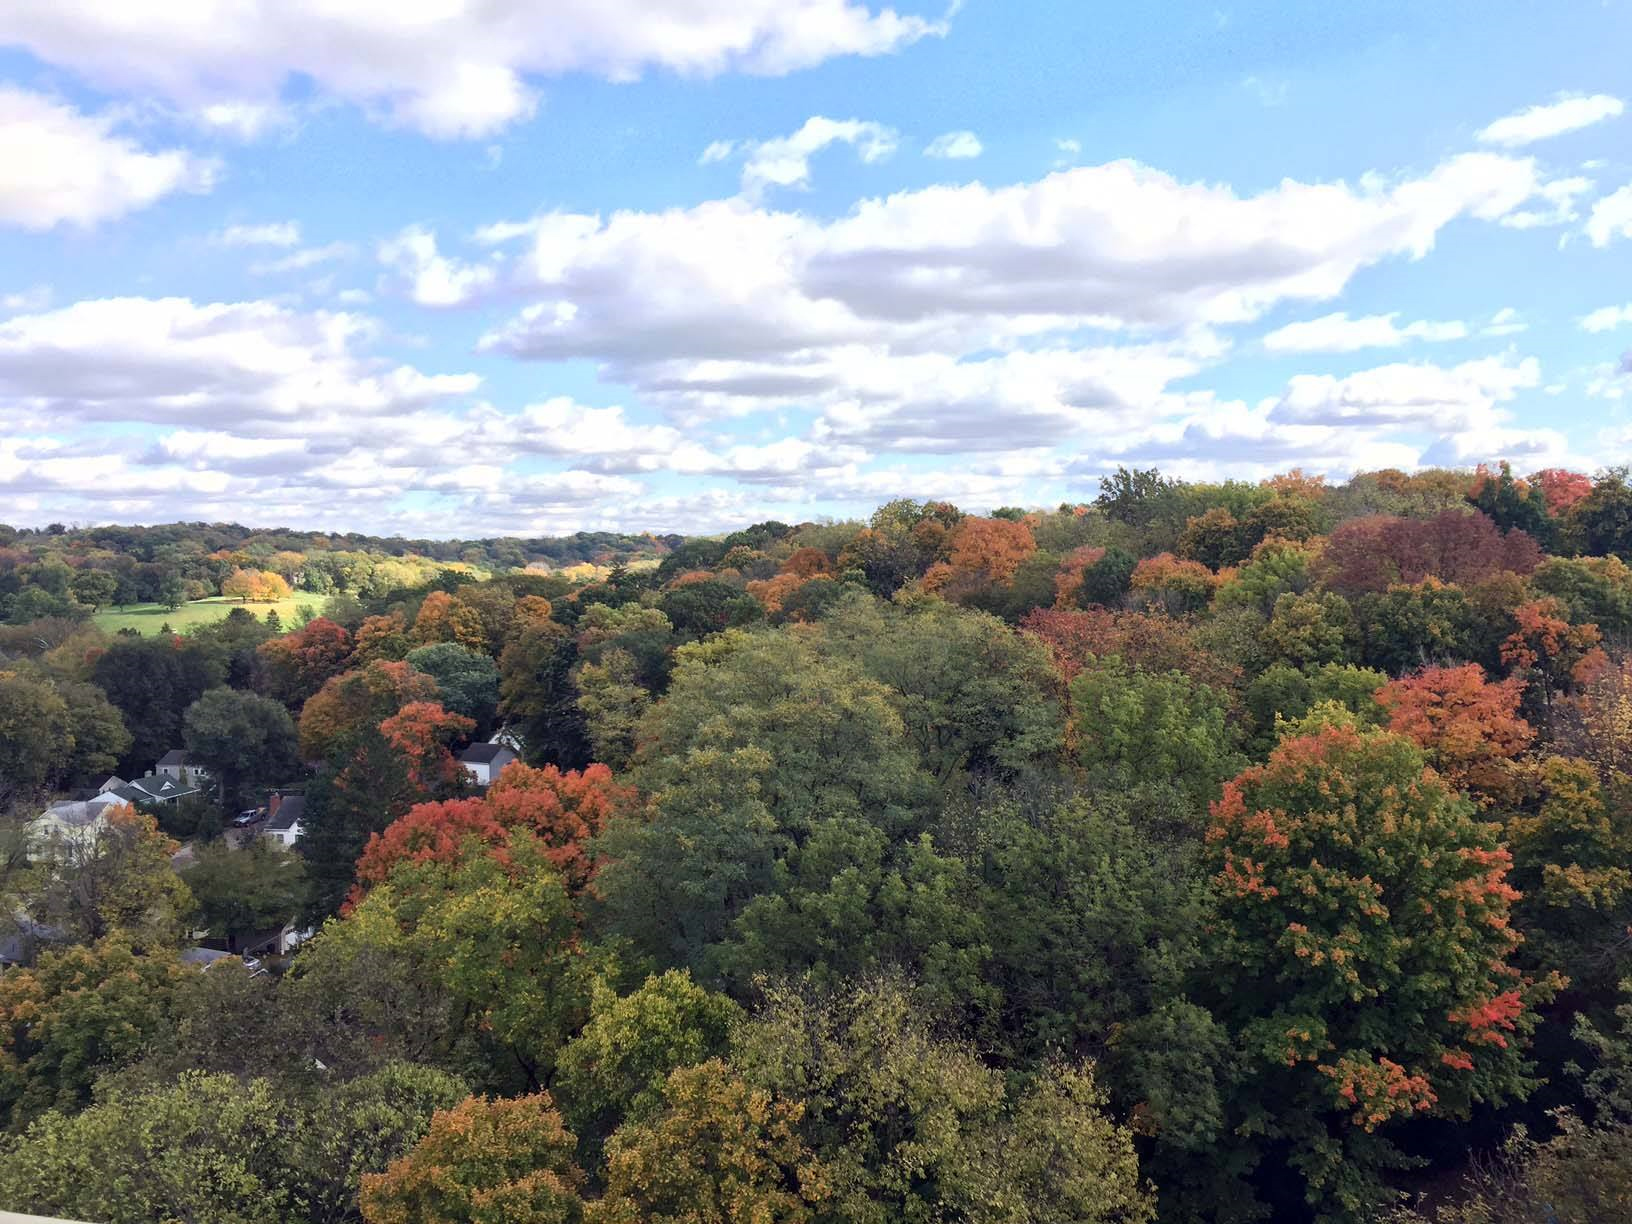 Country Club & Fall Foliage